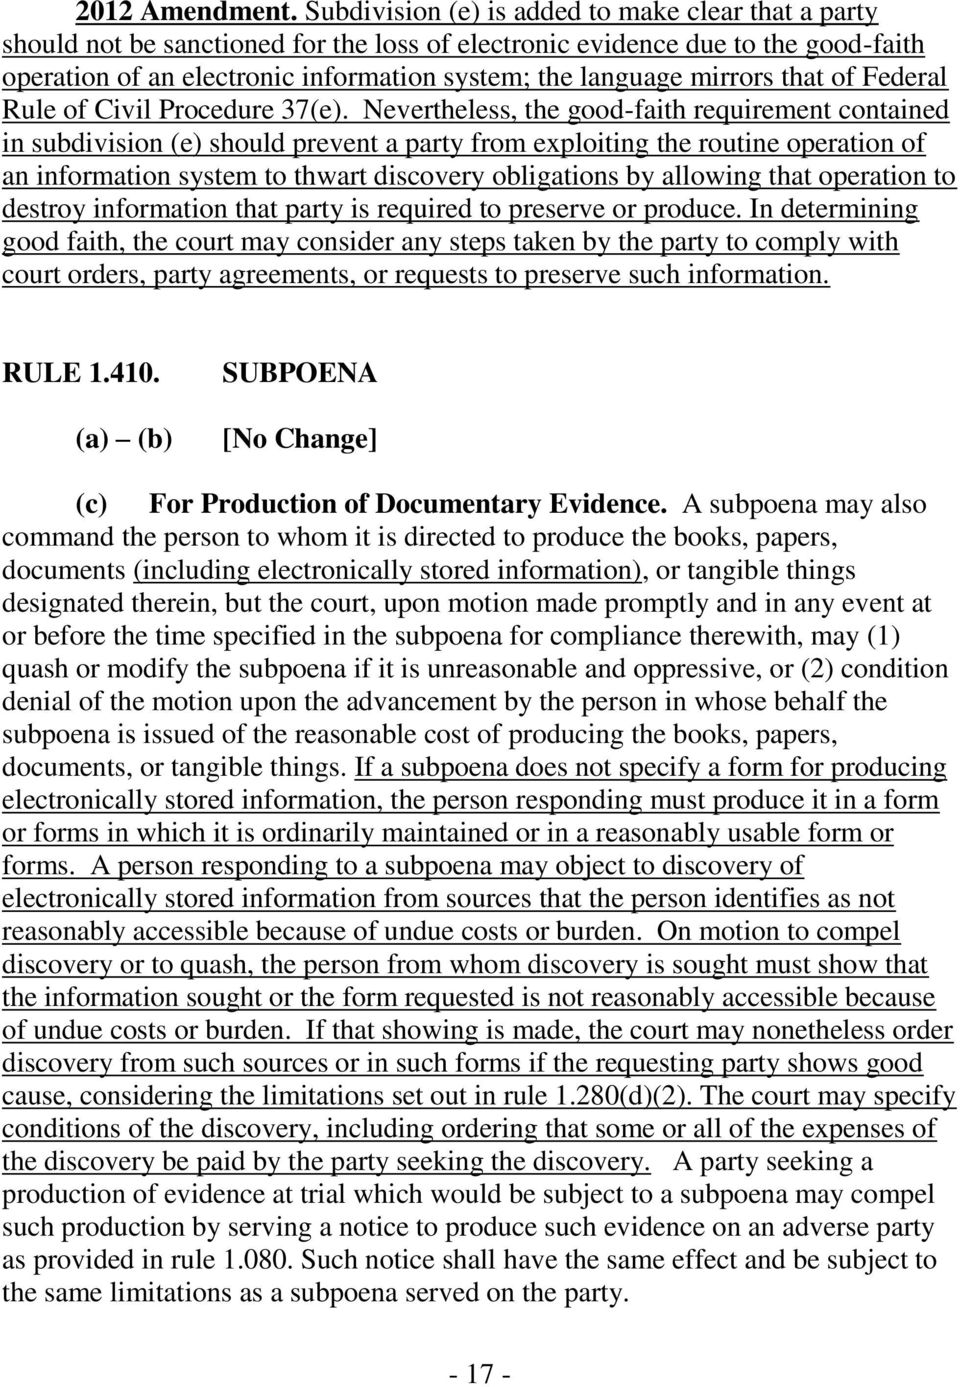 mirrors that of Federal Rule of Civil Procedure 37(e).